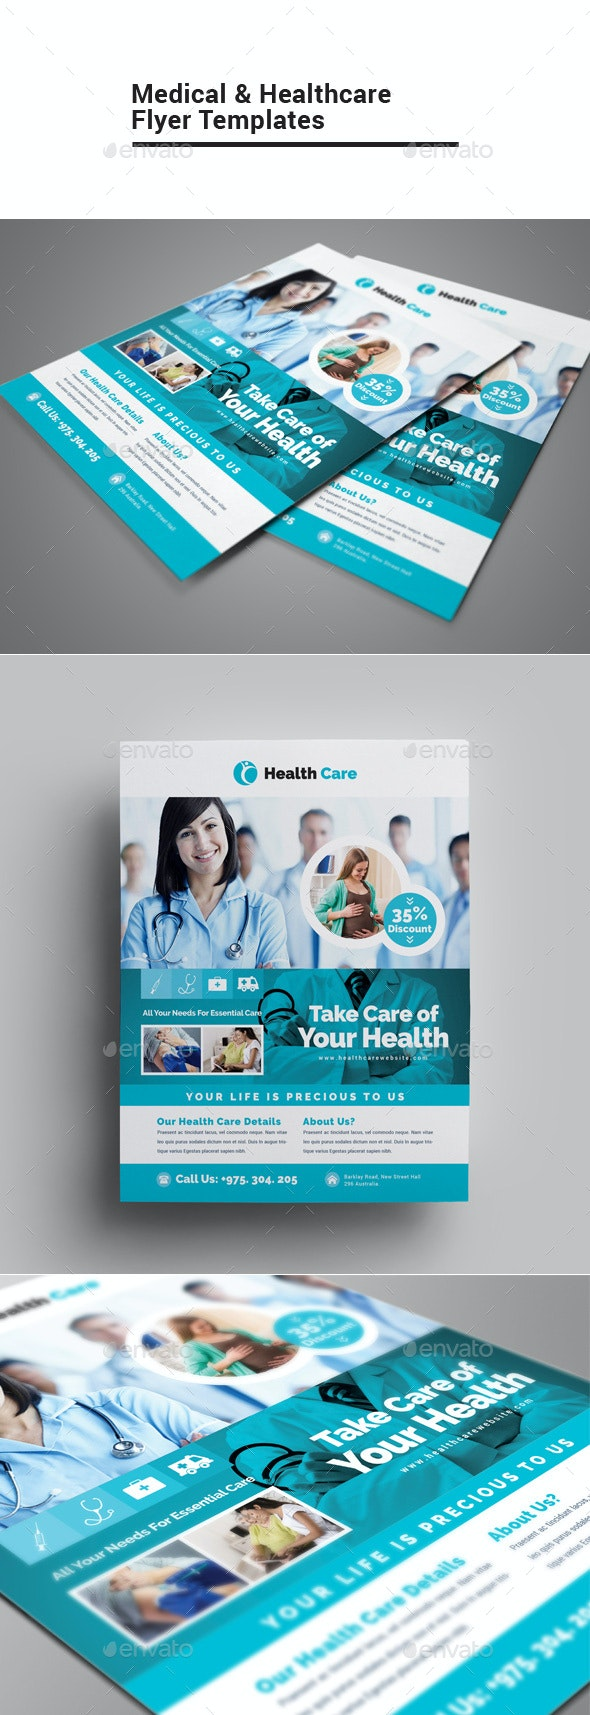 Medical & Healthcare Flyer - Corporate Flyers